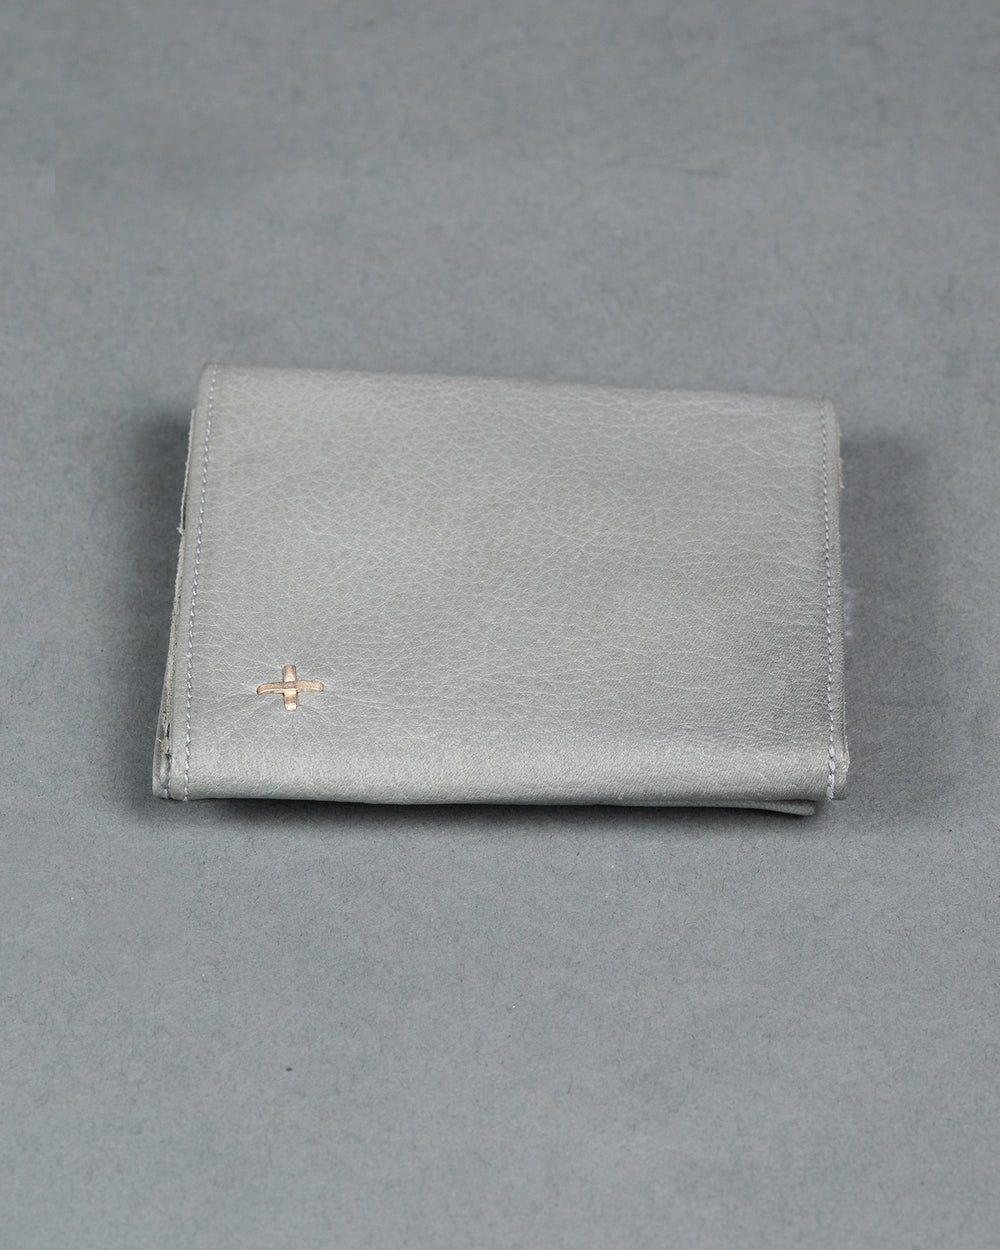 M.A+ by Maurizio Amadei Wallets - MUS